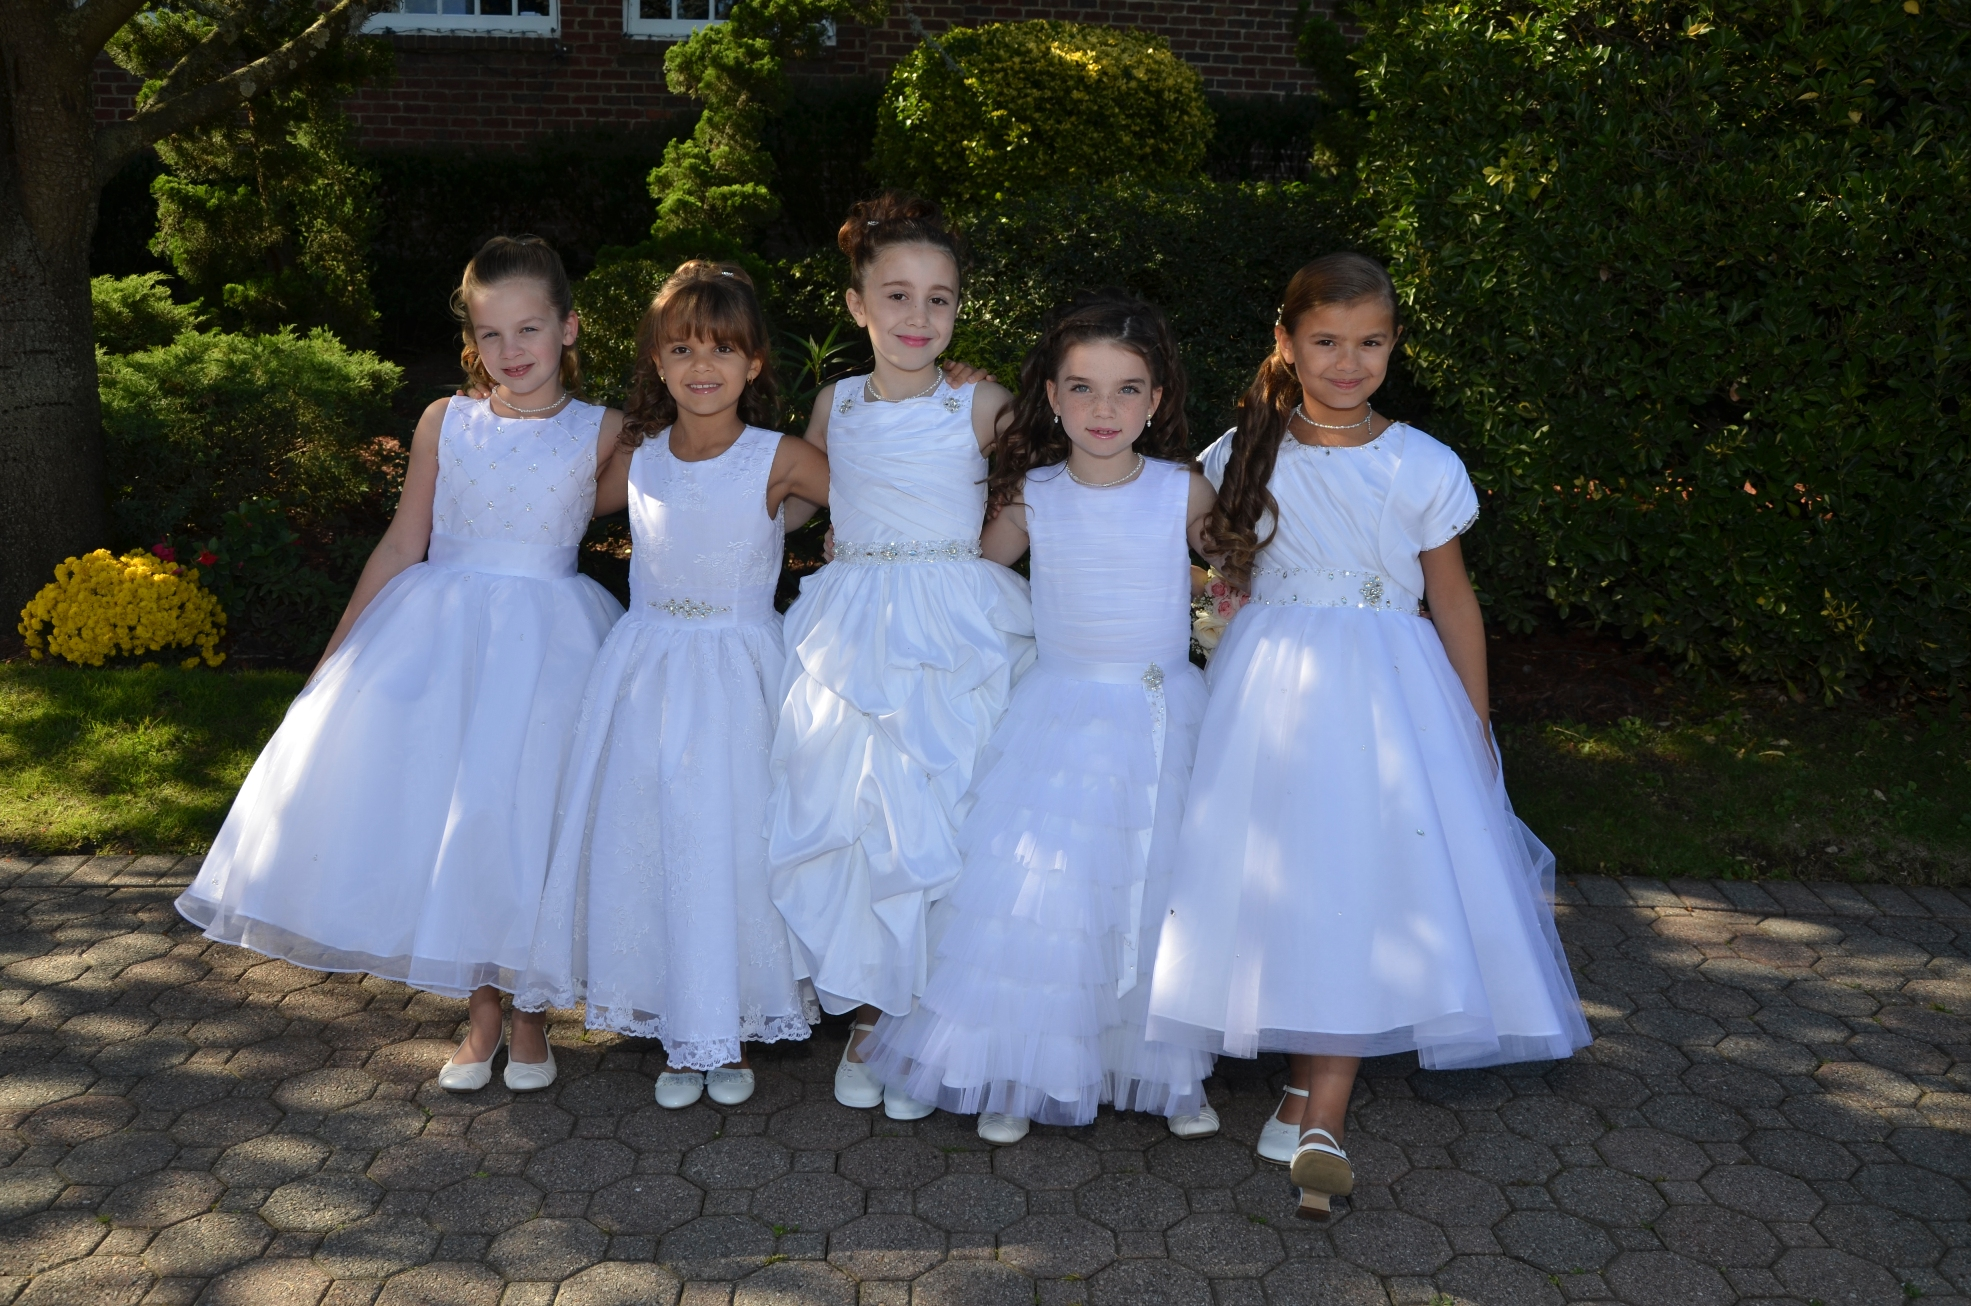 4083b50dfa3 Communion Dress Trunk Show at Carina Boutique in Whitestone NY This Weekend  Featuring Sweetie Pie Collection